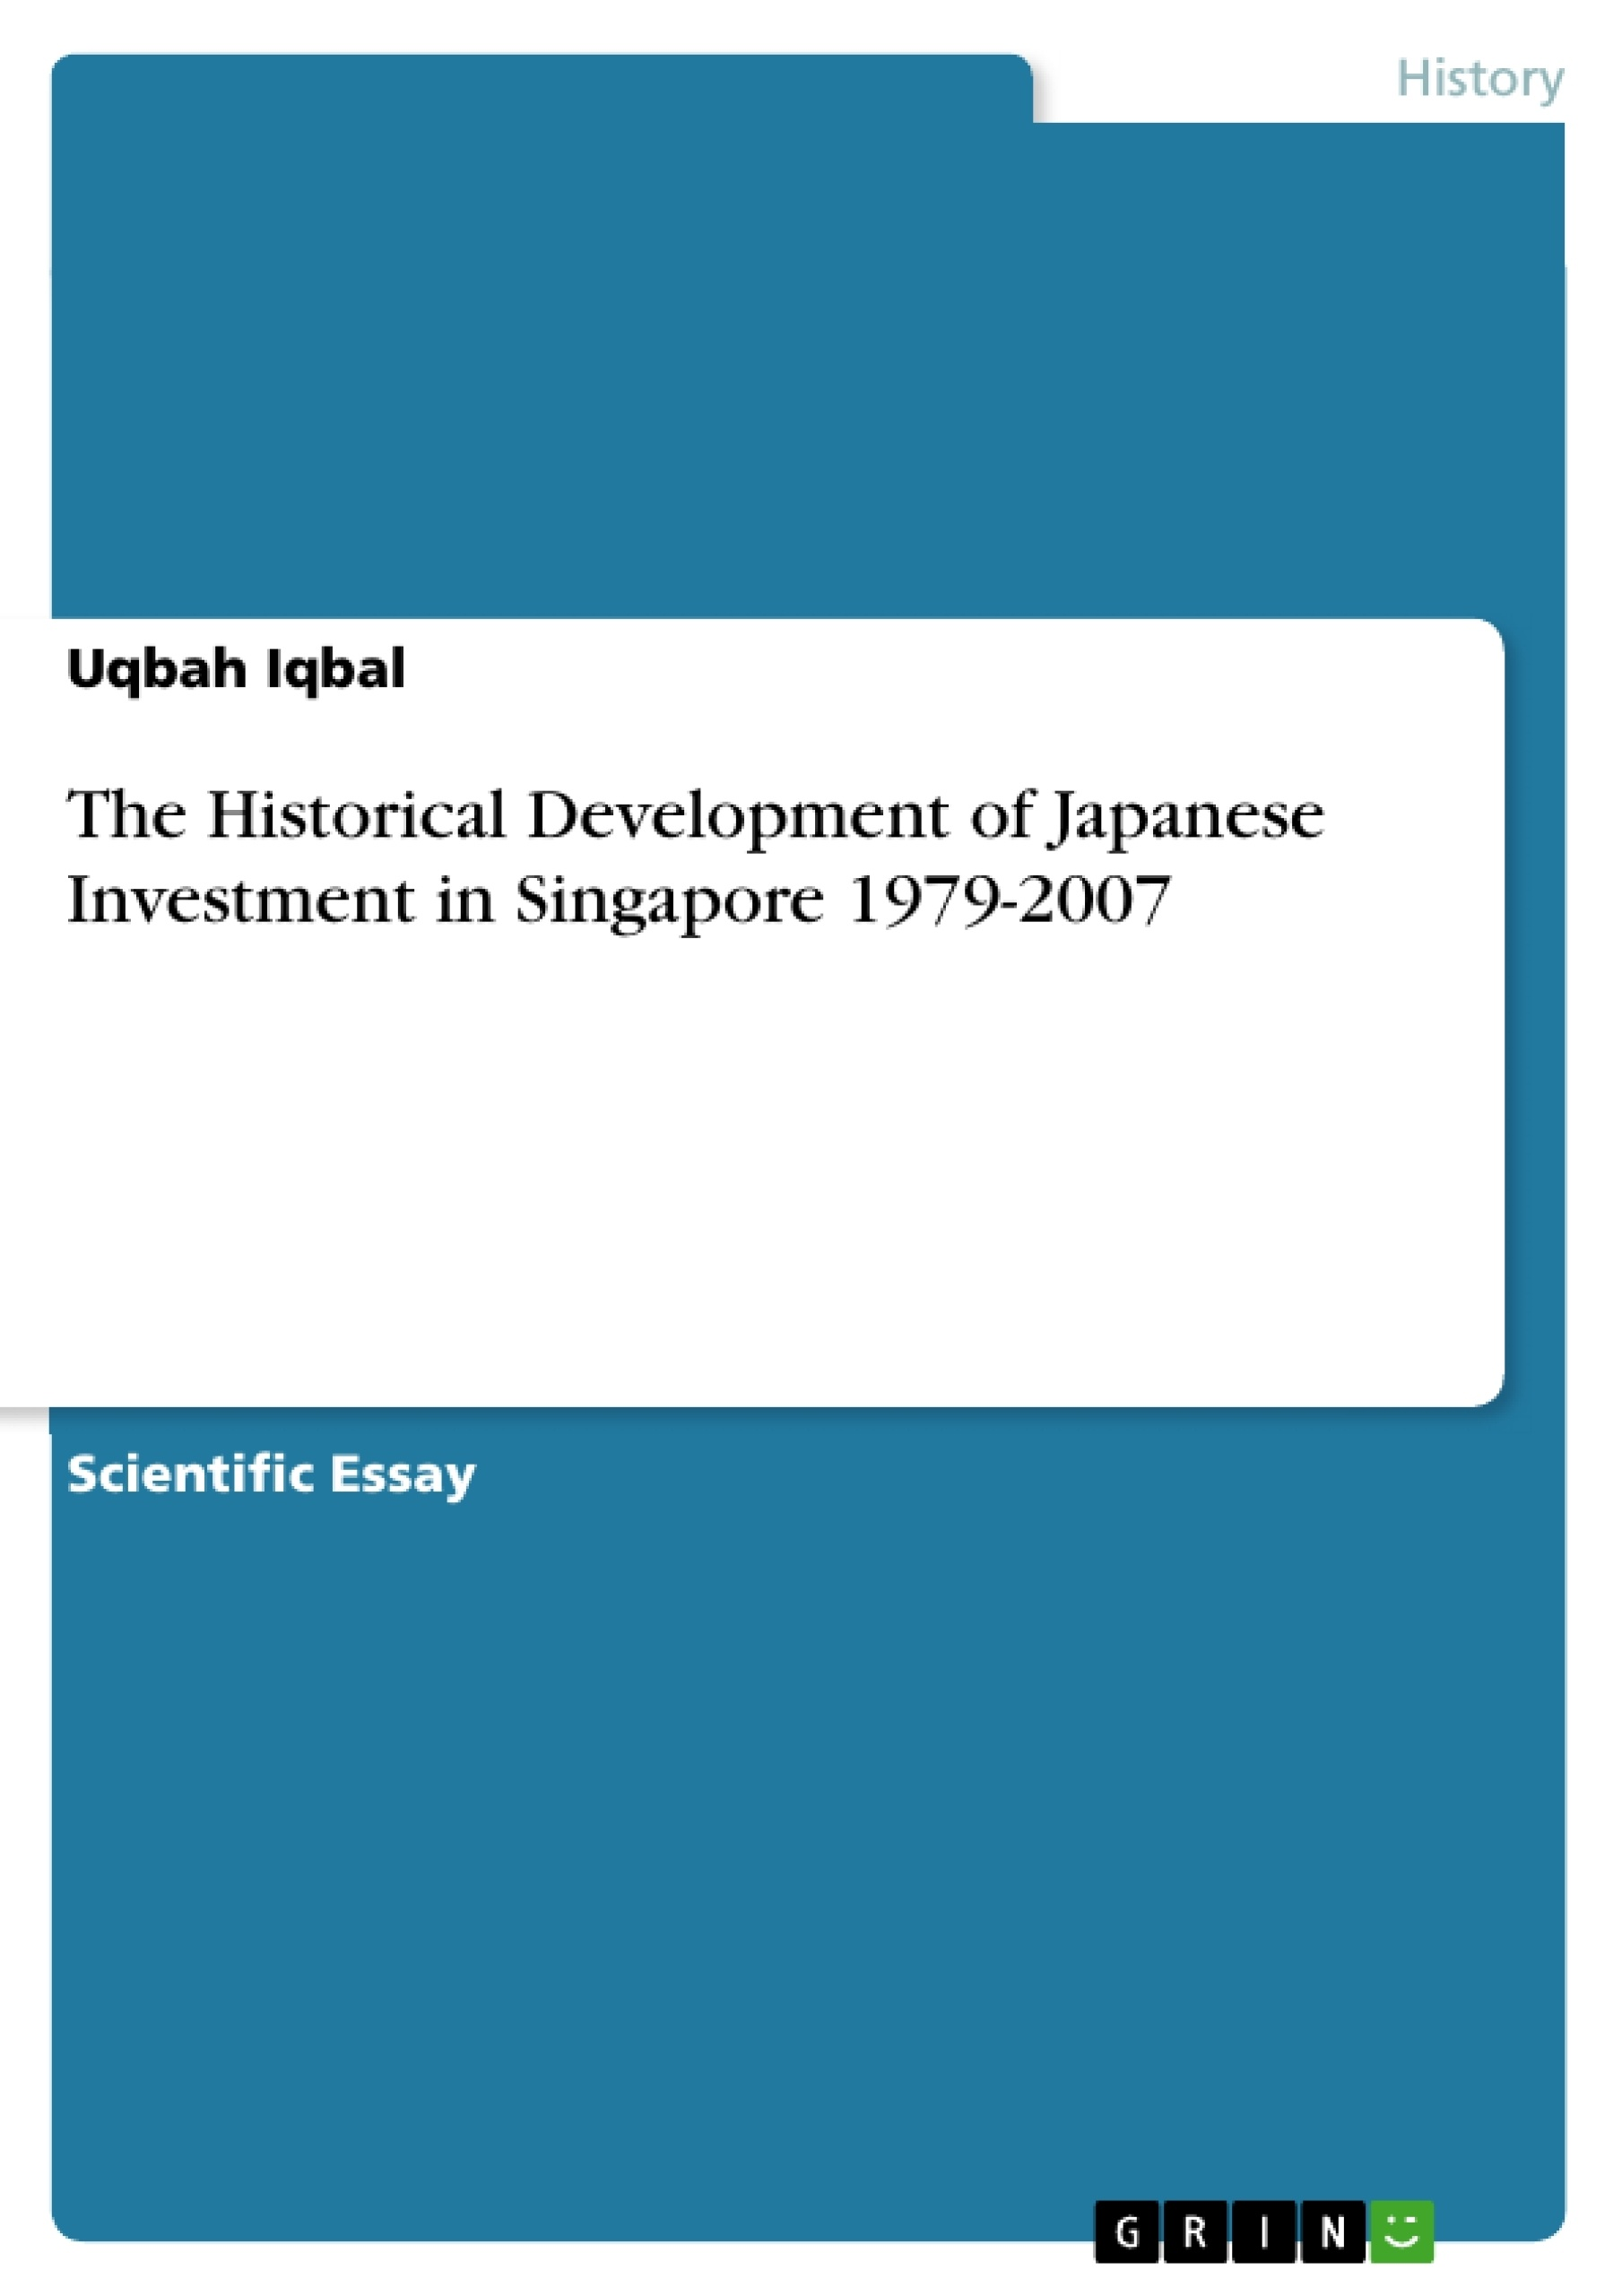 GRIN - The Historical Development of Japanese Investment in Singapore  1979-2007